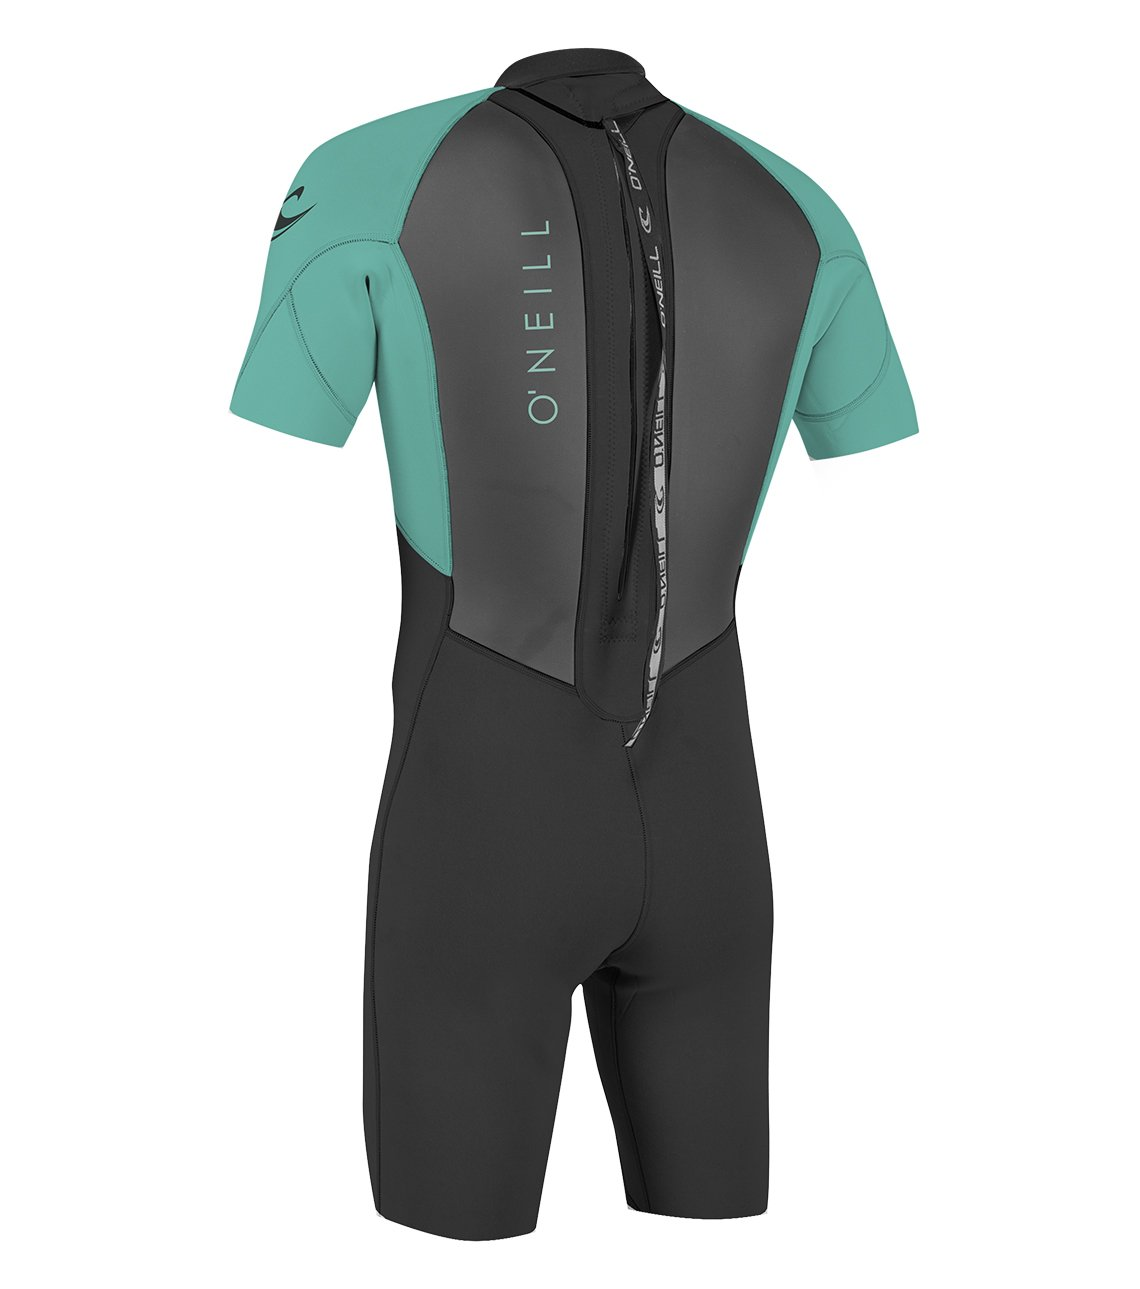 O'Neill Youth Reactor-2 2mm Back Zip Short Sleeve Spring Wetsuit, Black/Aqua, 4 by O'Neill Wetsuits (Image #2)